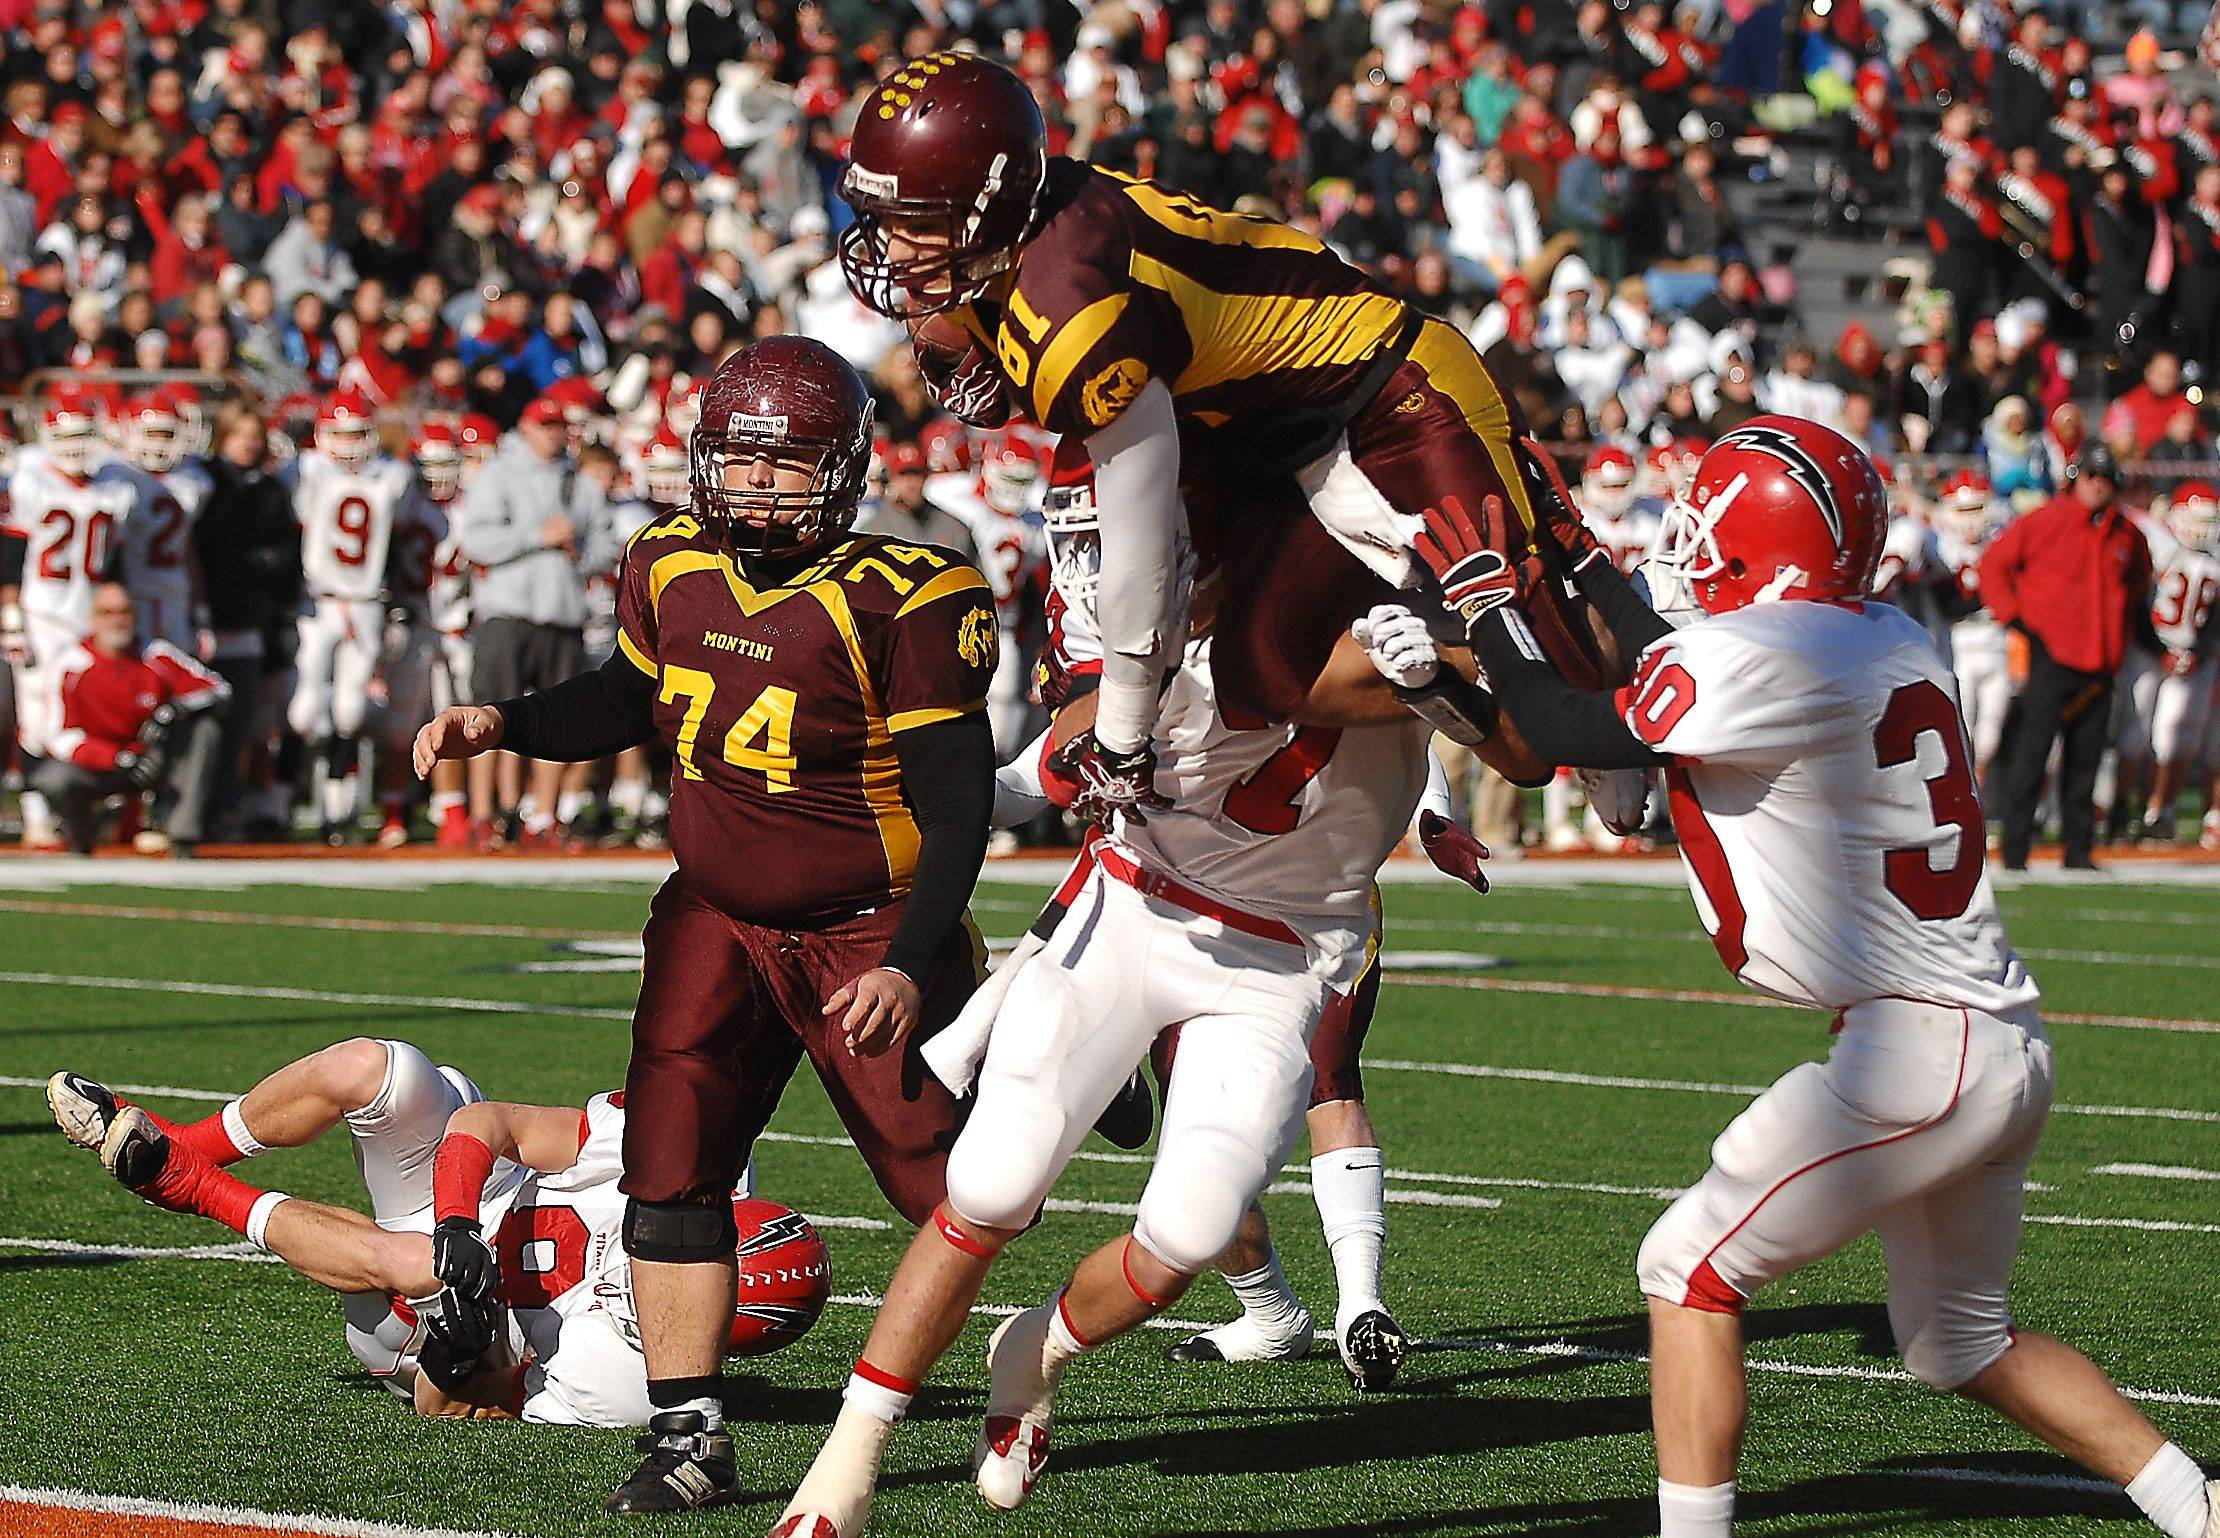 Montini's Jordan Westerkamp leaps over two Chatham Glenwood defenders to score his first touchdown during the Class 5A state championsip in Champaign Saturday.